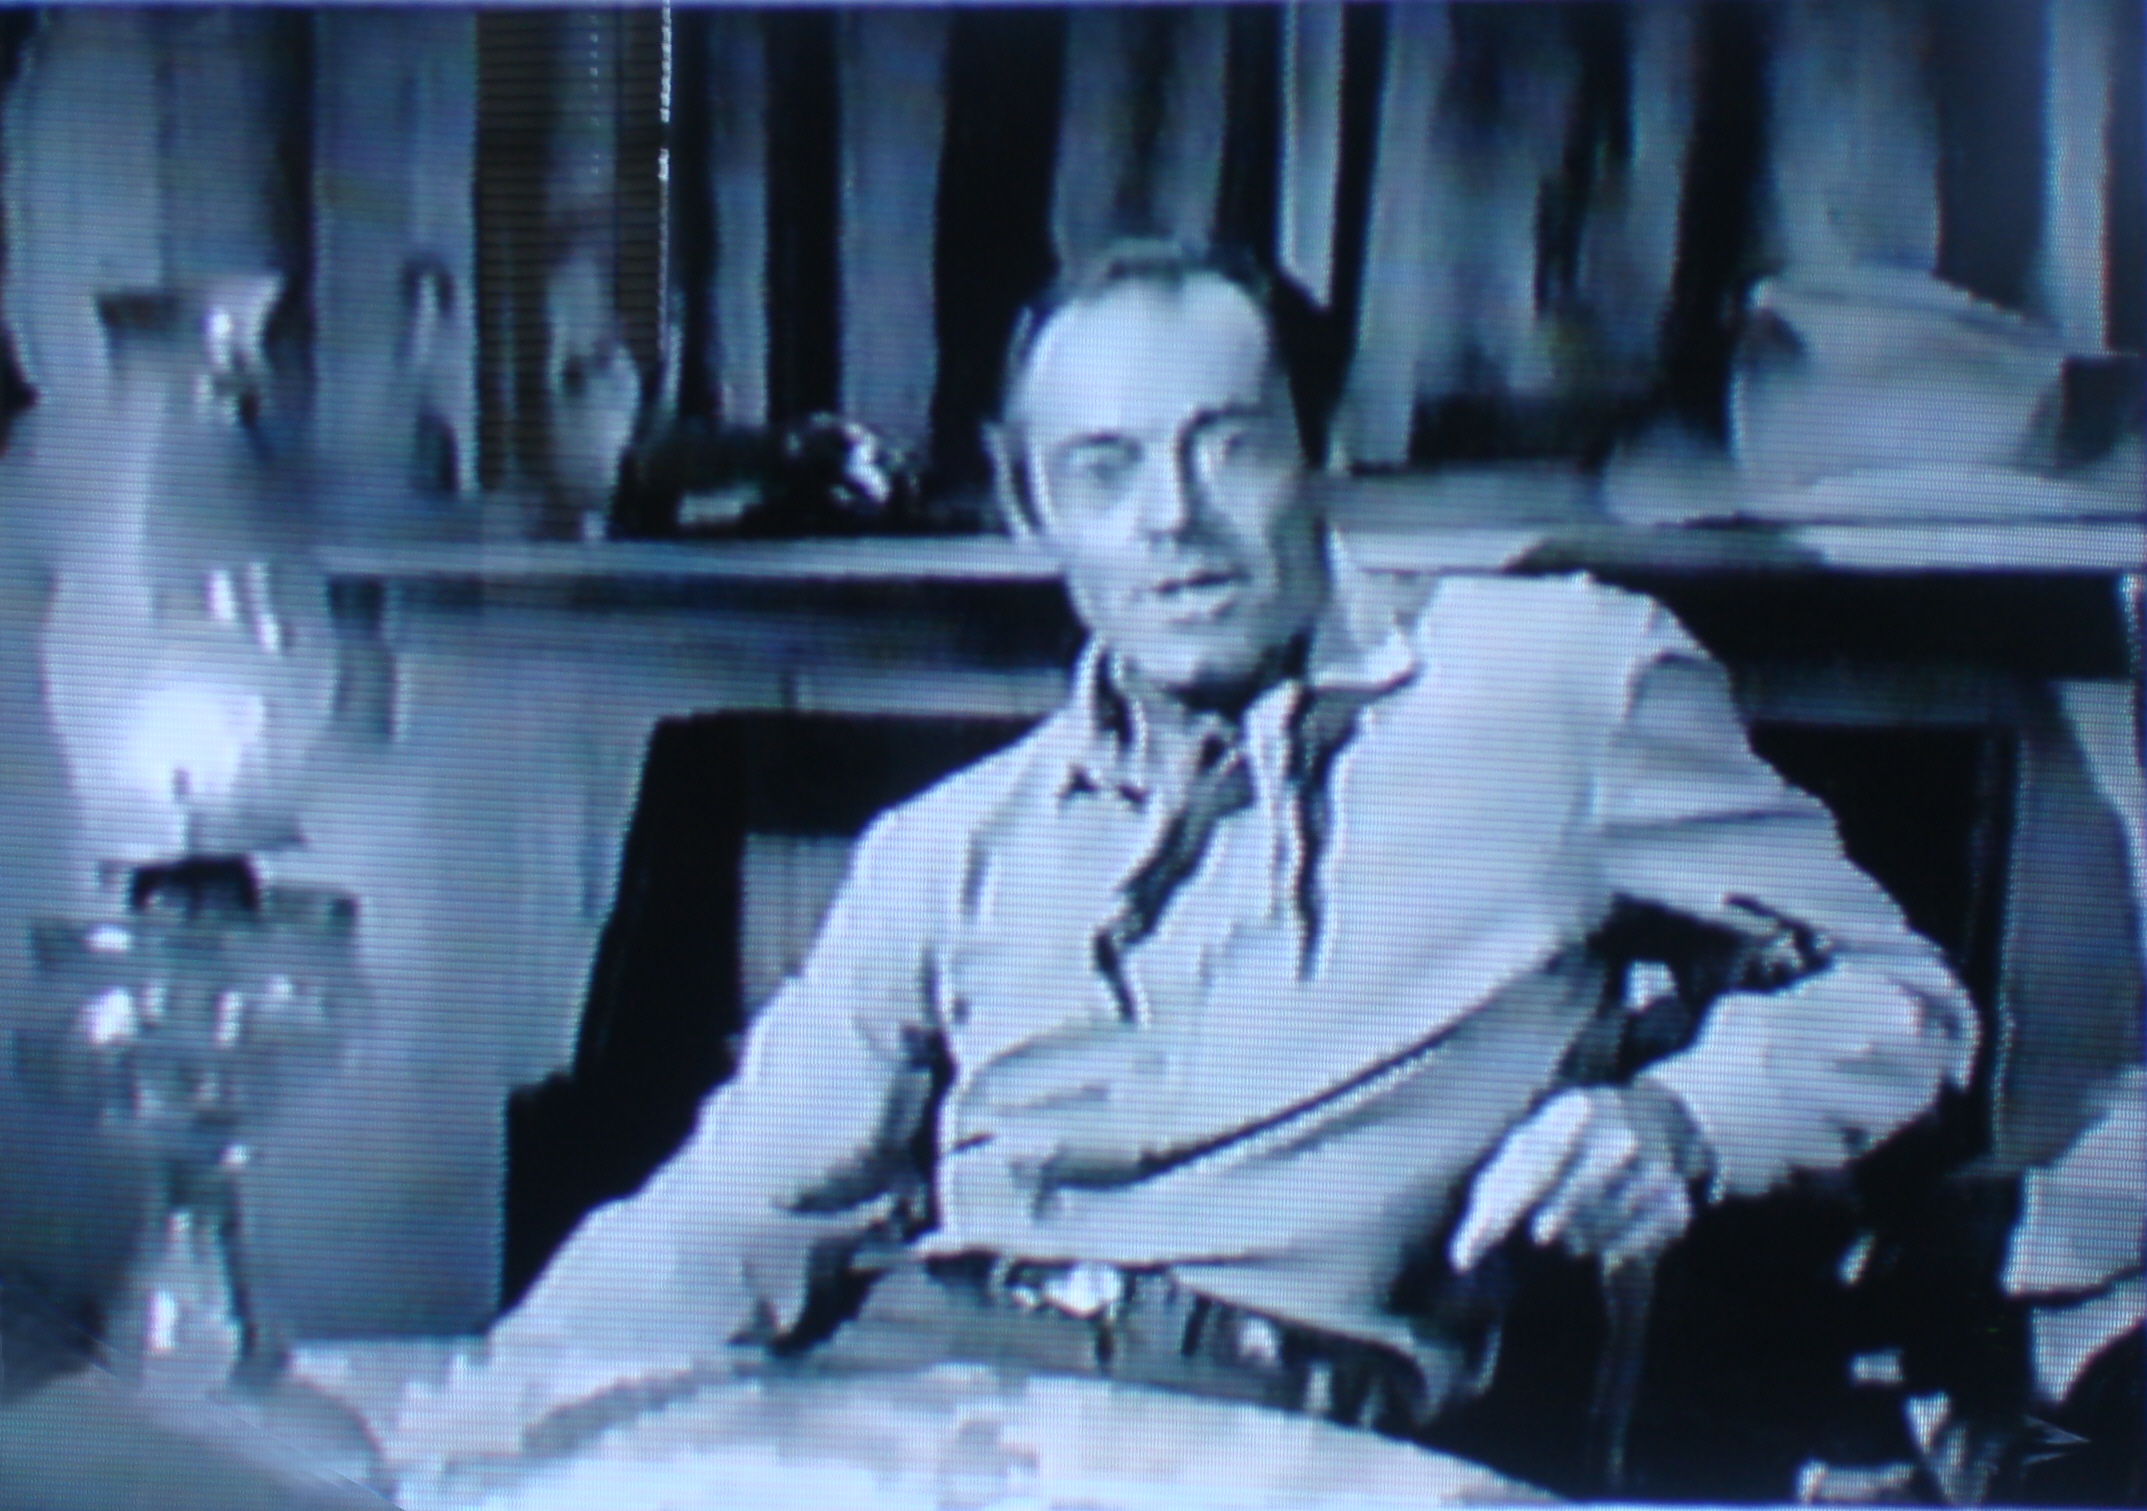 film analysis twelve angry men writework cropped screenshot of henry fonda from the trailer the tin star 1957